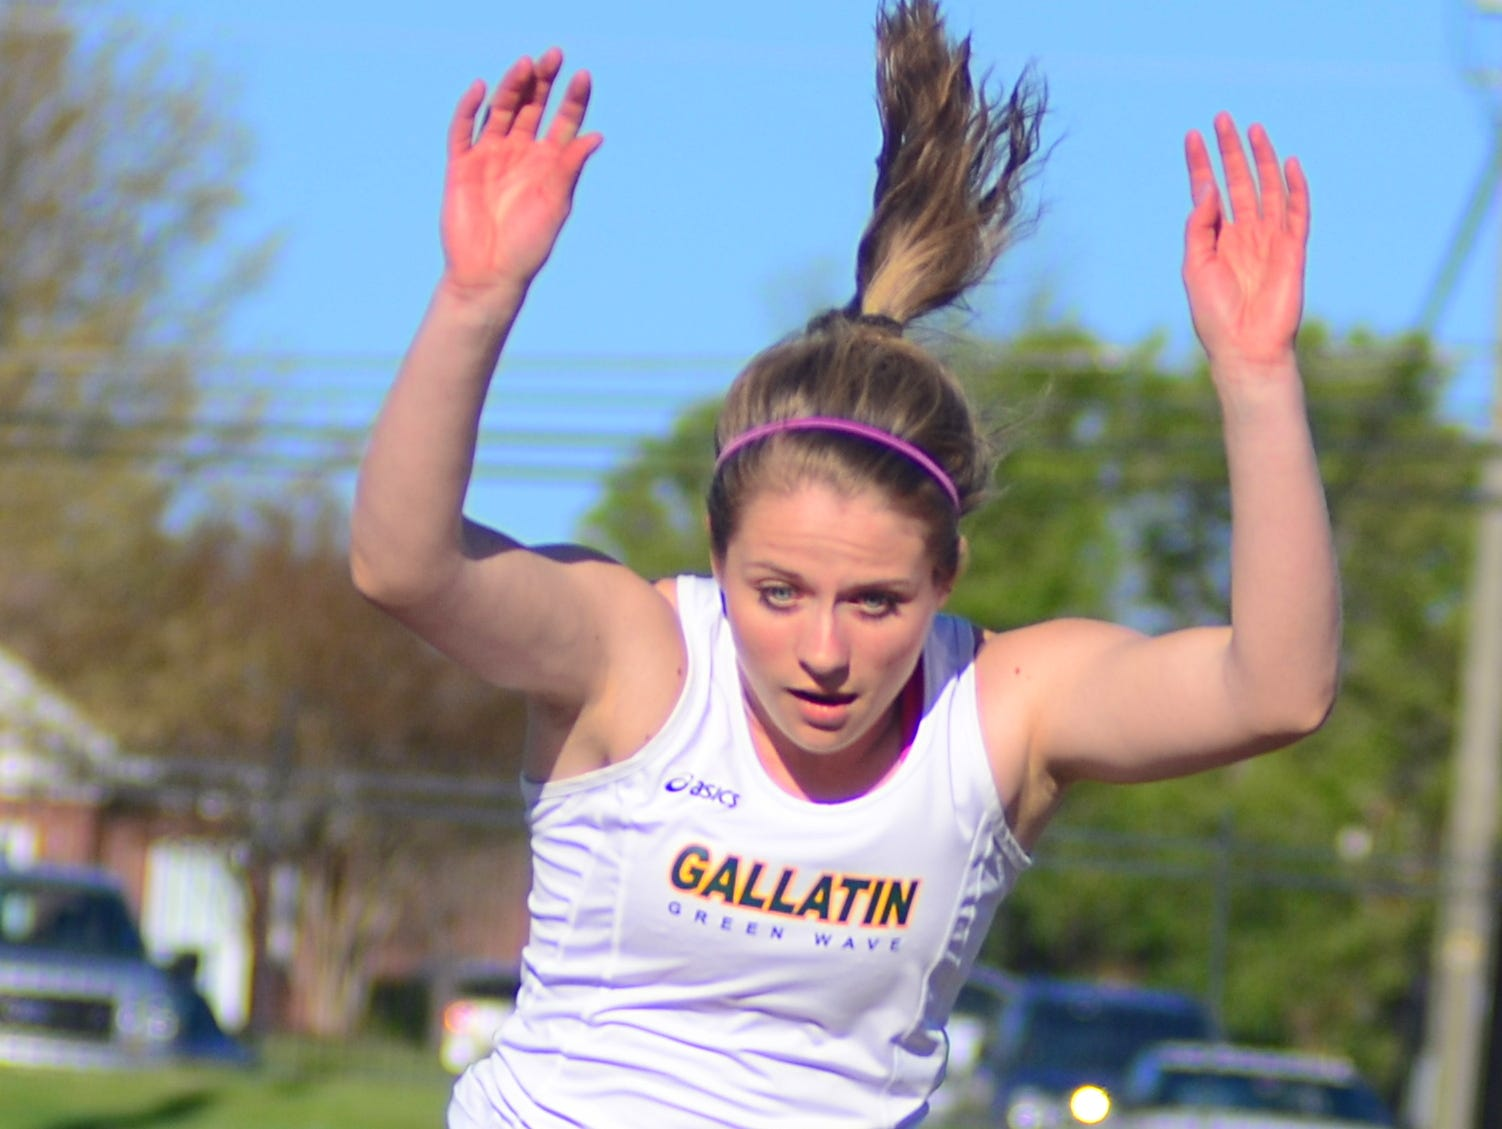 Gallatin High senior Kelsey Warren won the girls' long jump (16 feet, 1.5 inches) and triple jump (32 feet, 9 inches) events.